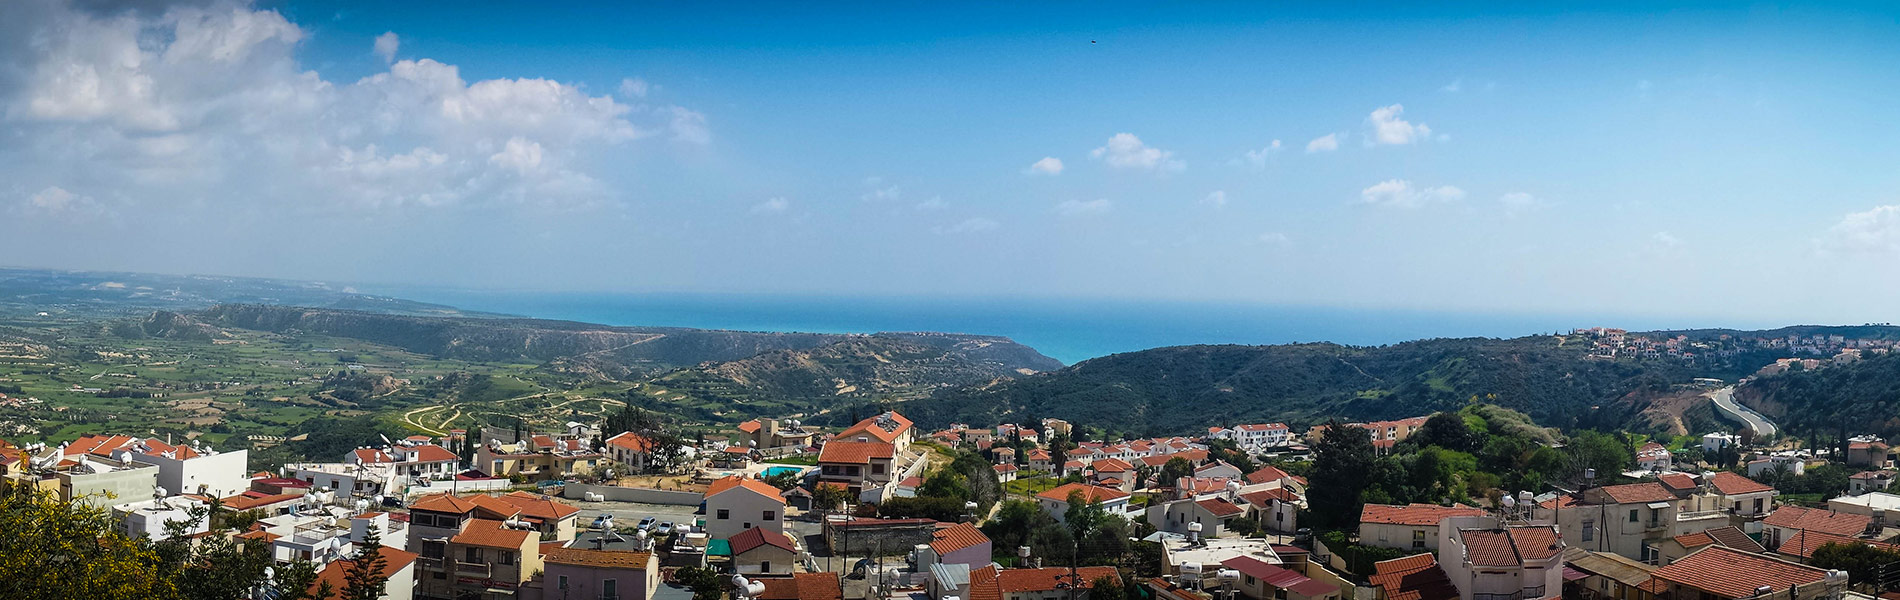 Pissouri's Unique Views ...